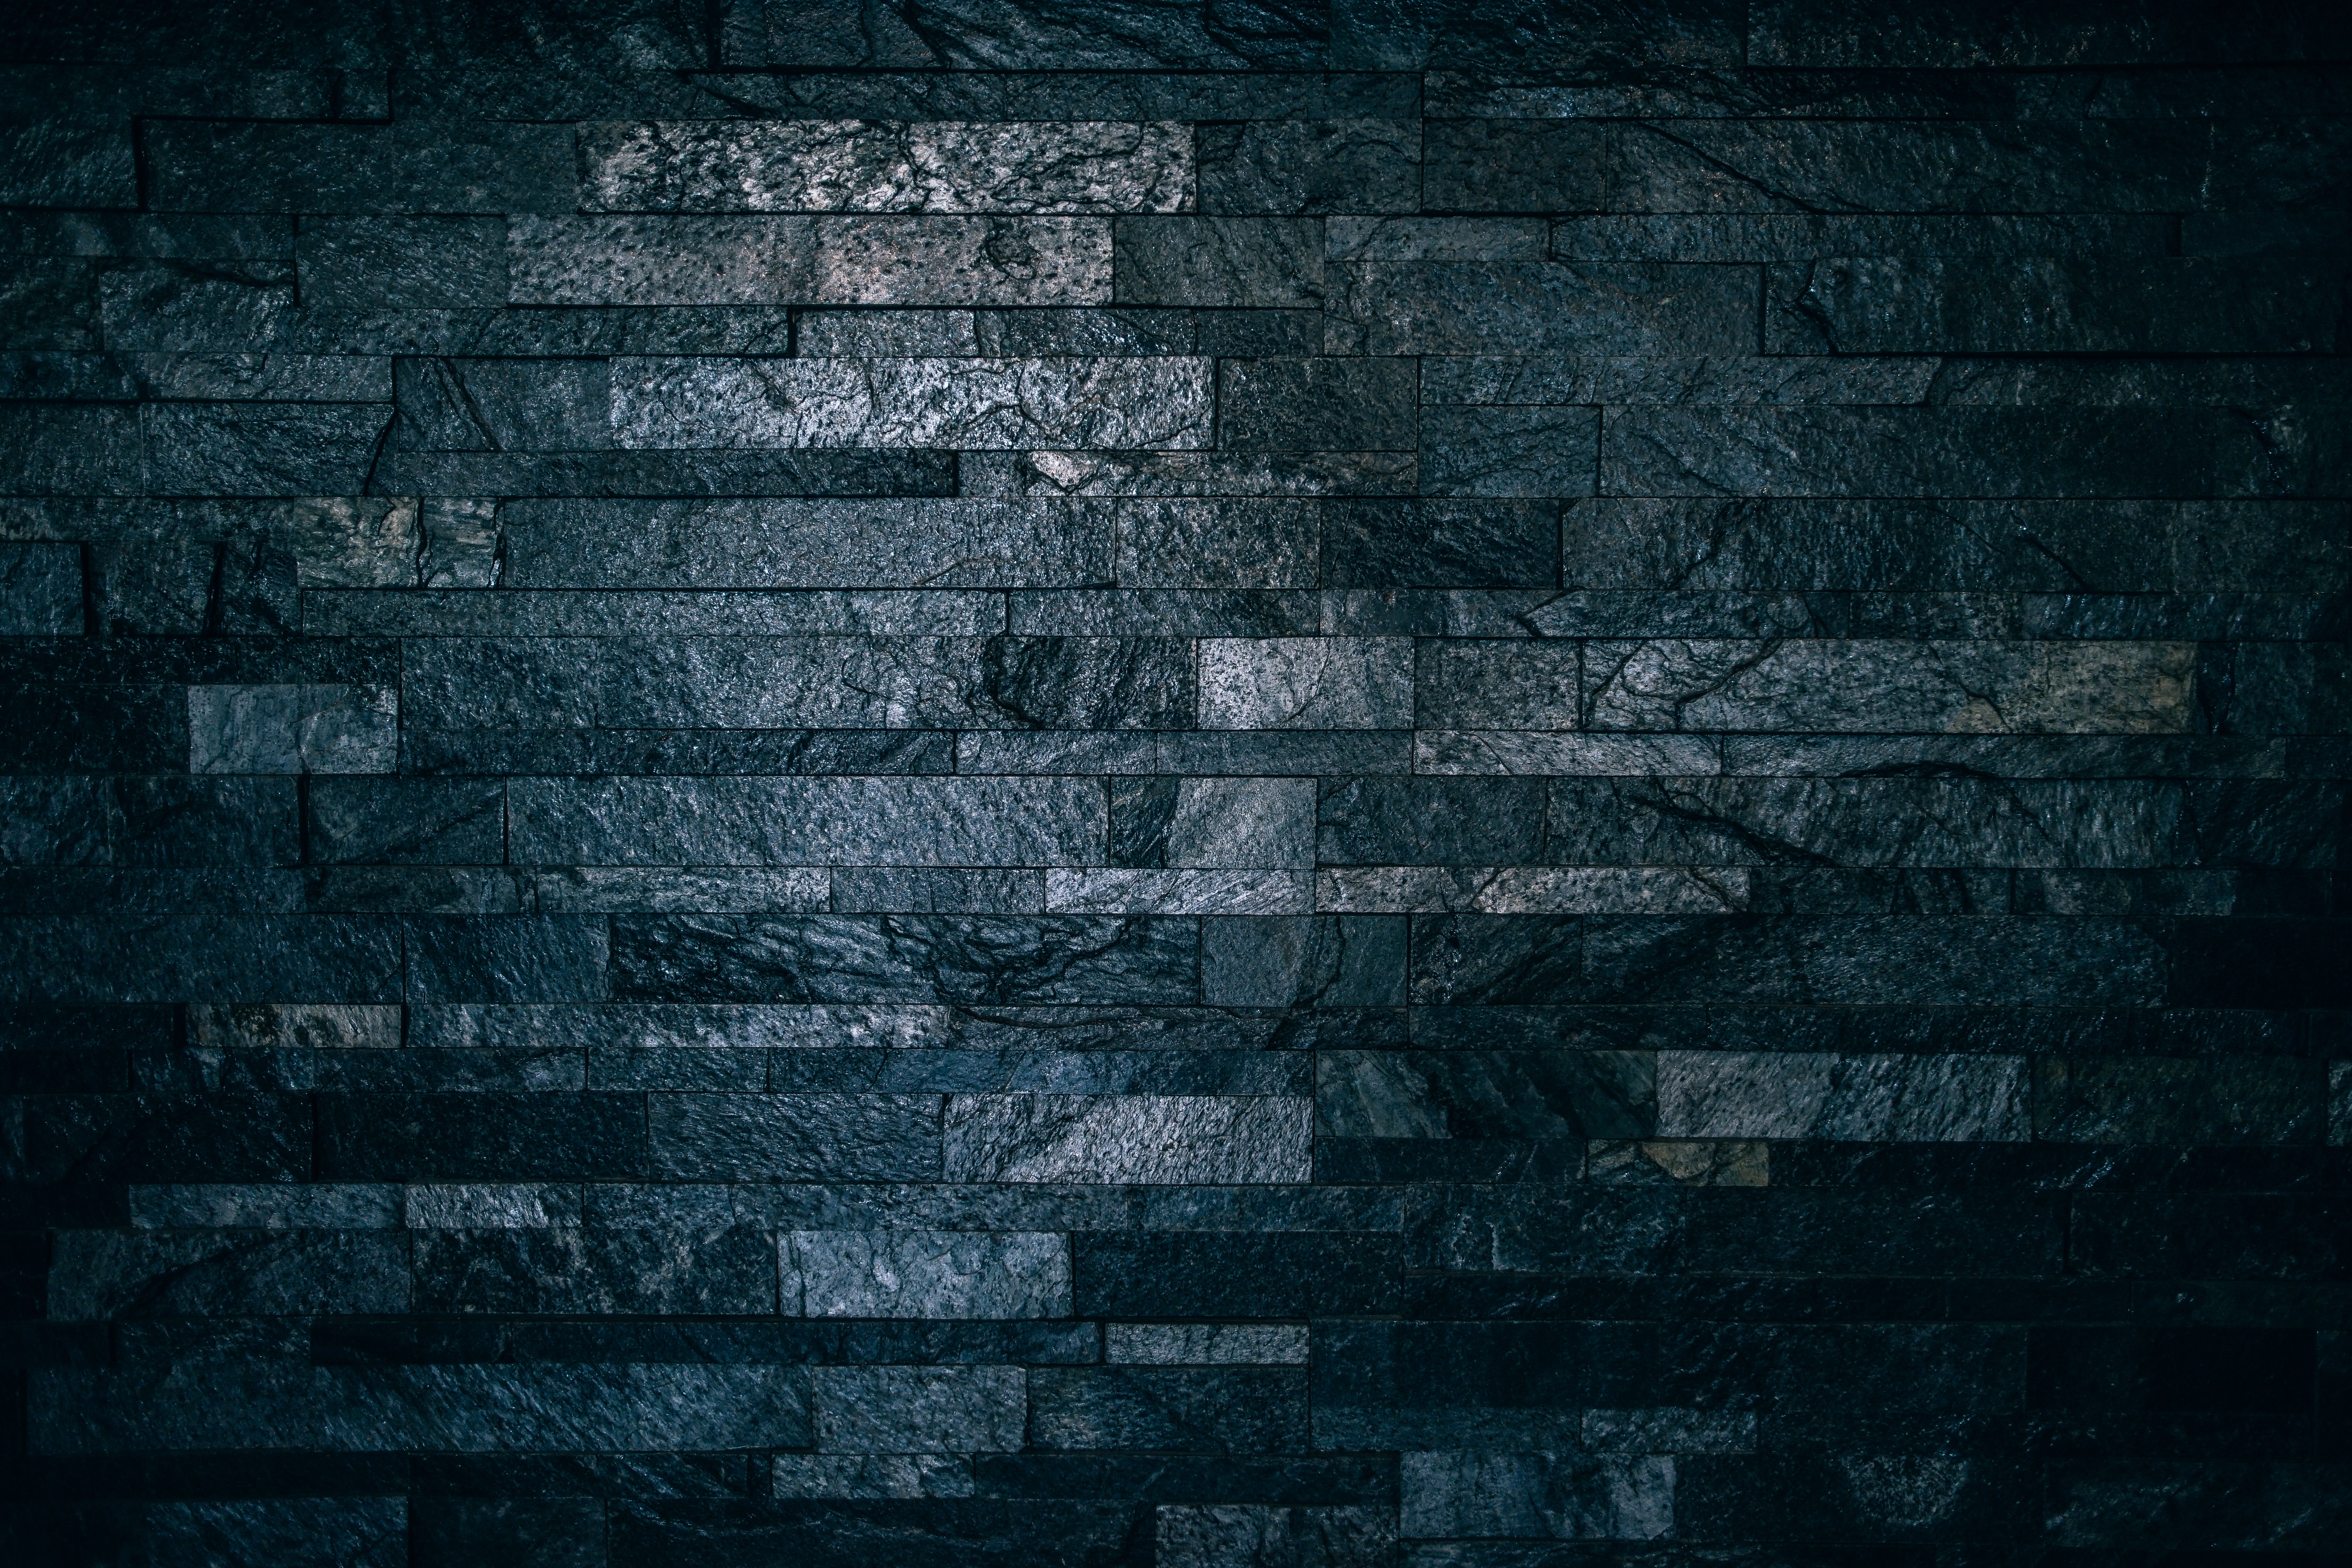 112661 download wallpaper Textures, Texture, Wall, Bricks, Tile, Dark, Ribbed screensavers and pictures for free